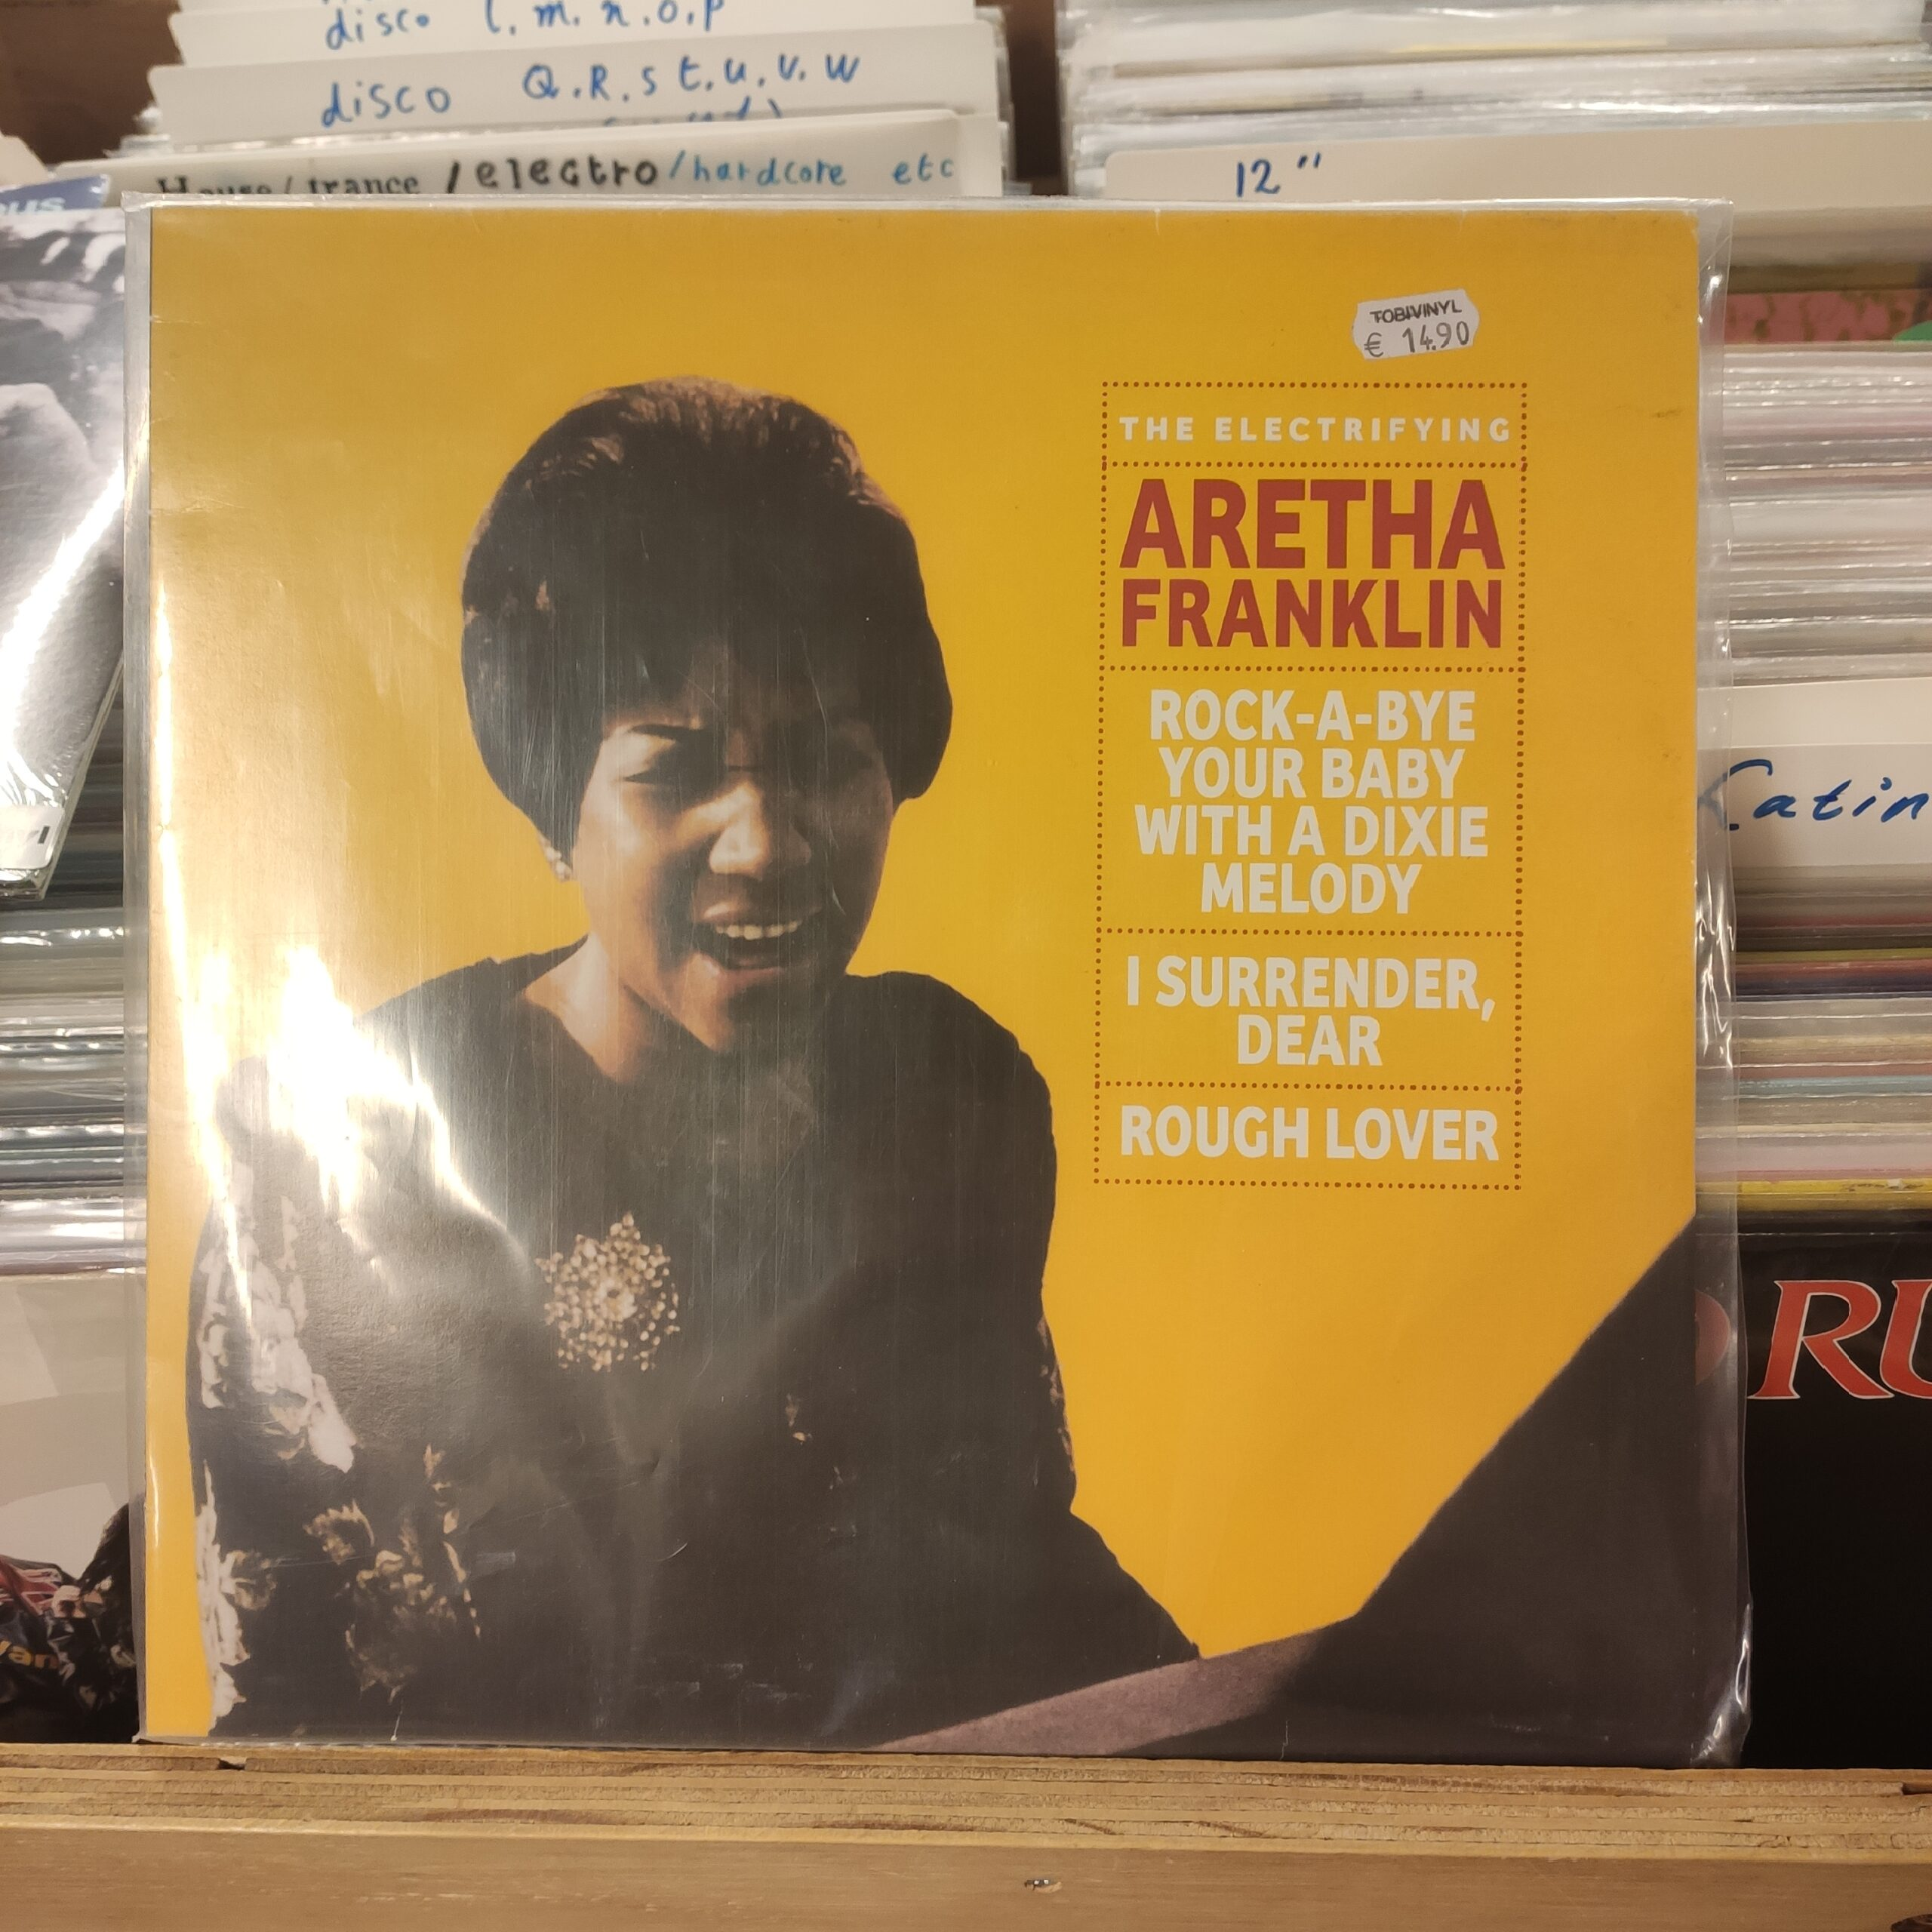 Product image Aretha Franklin – The electrifying Aretha Franklin – LP Nieuw